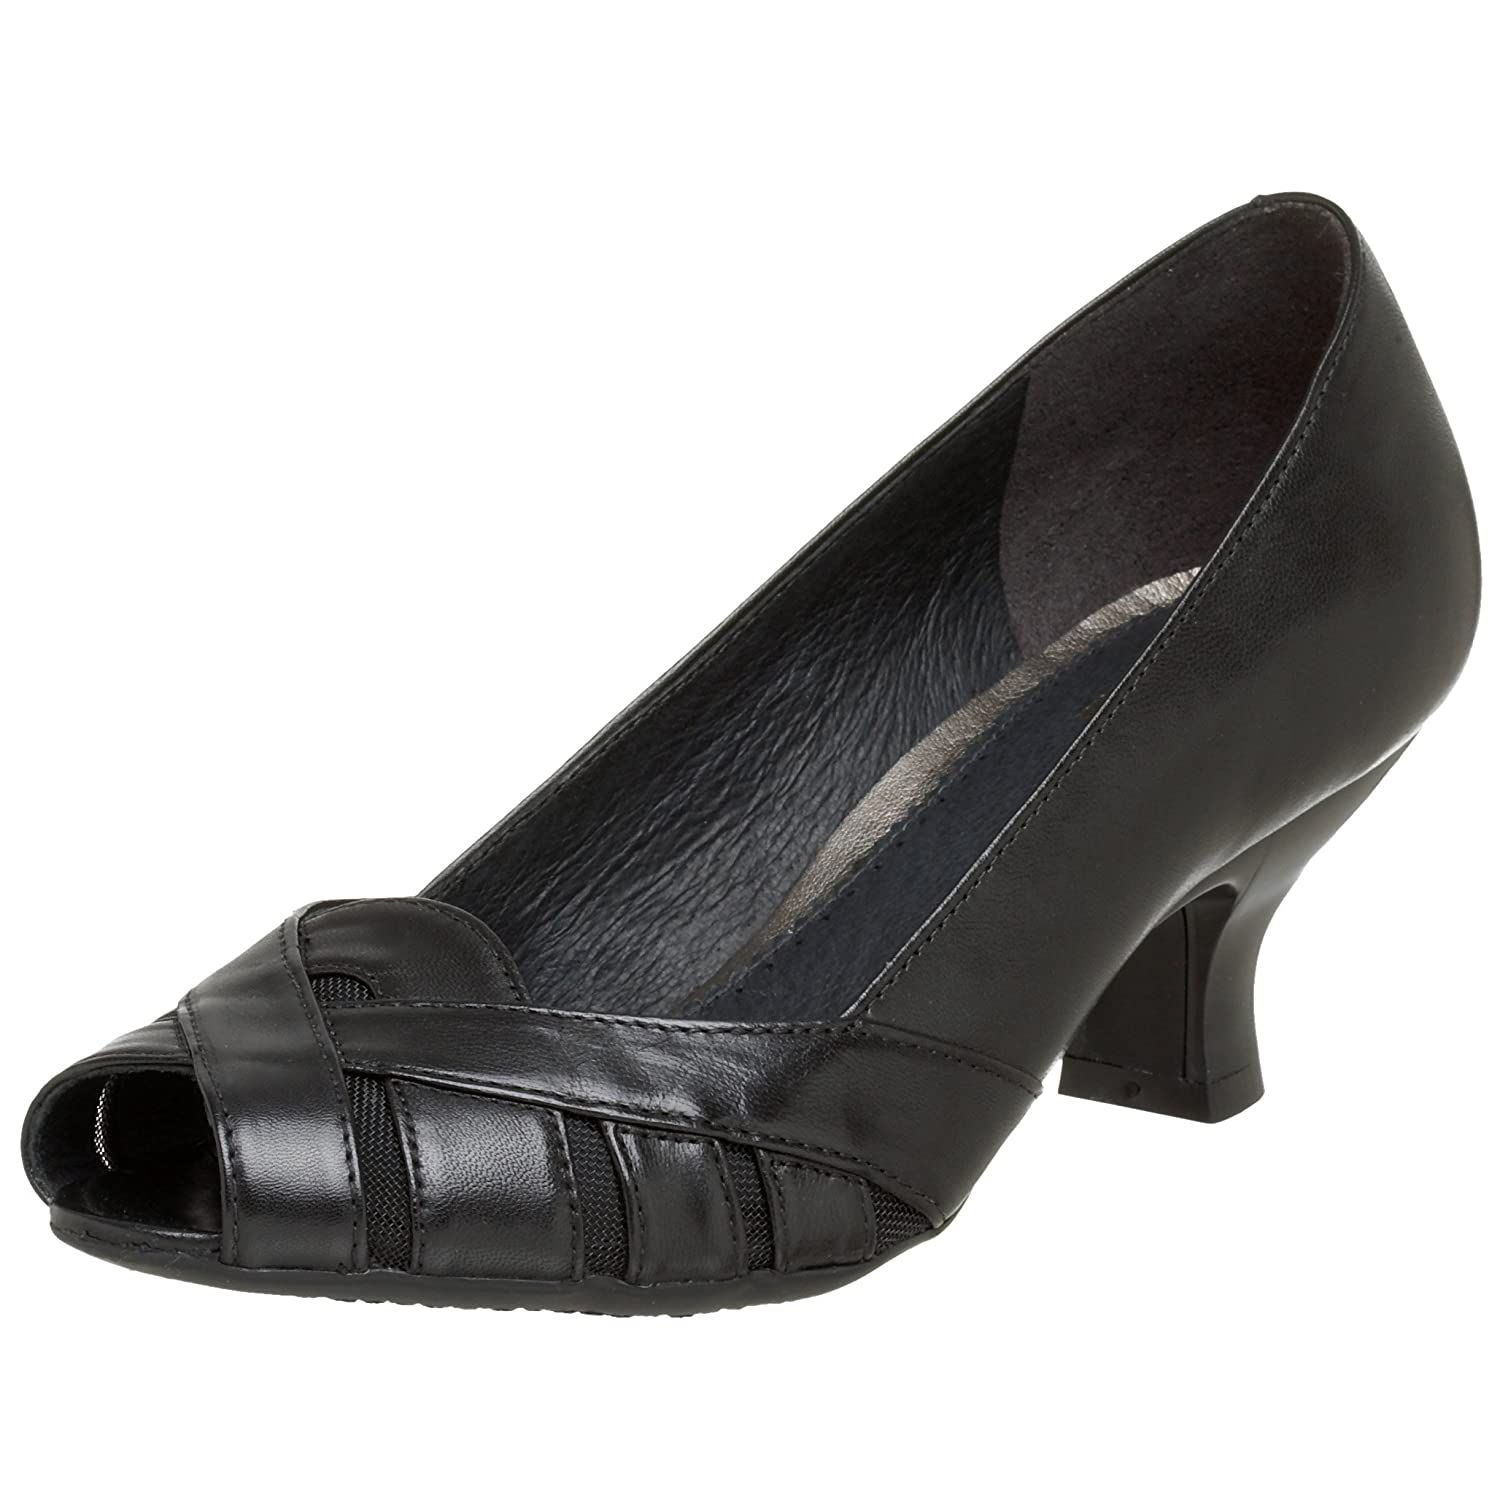 Clarks Apple Star Pump - Free Overnight Shipping & Return Shipping: Endless.com from endless.com